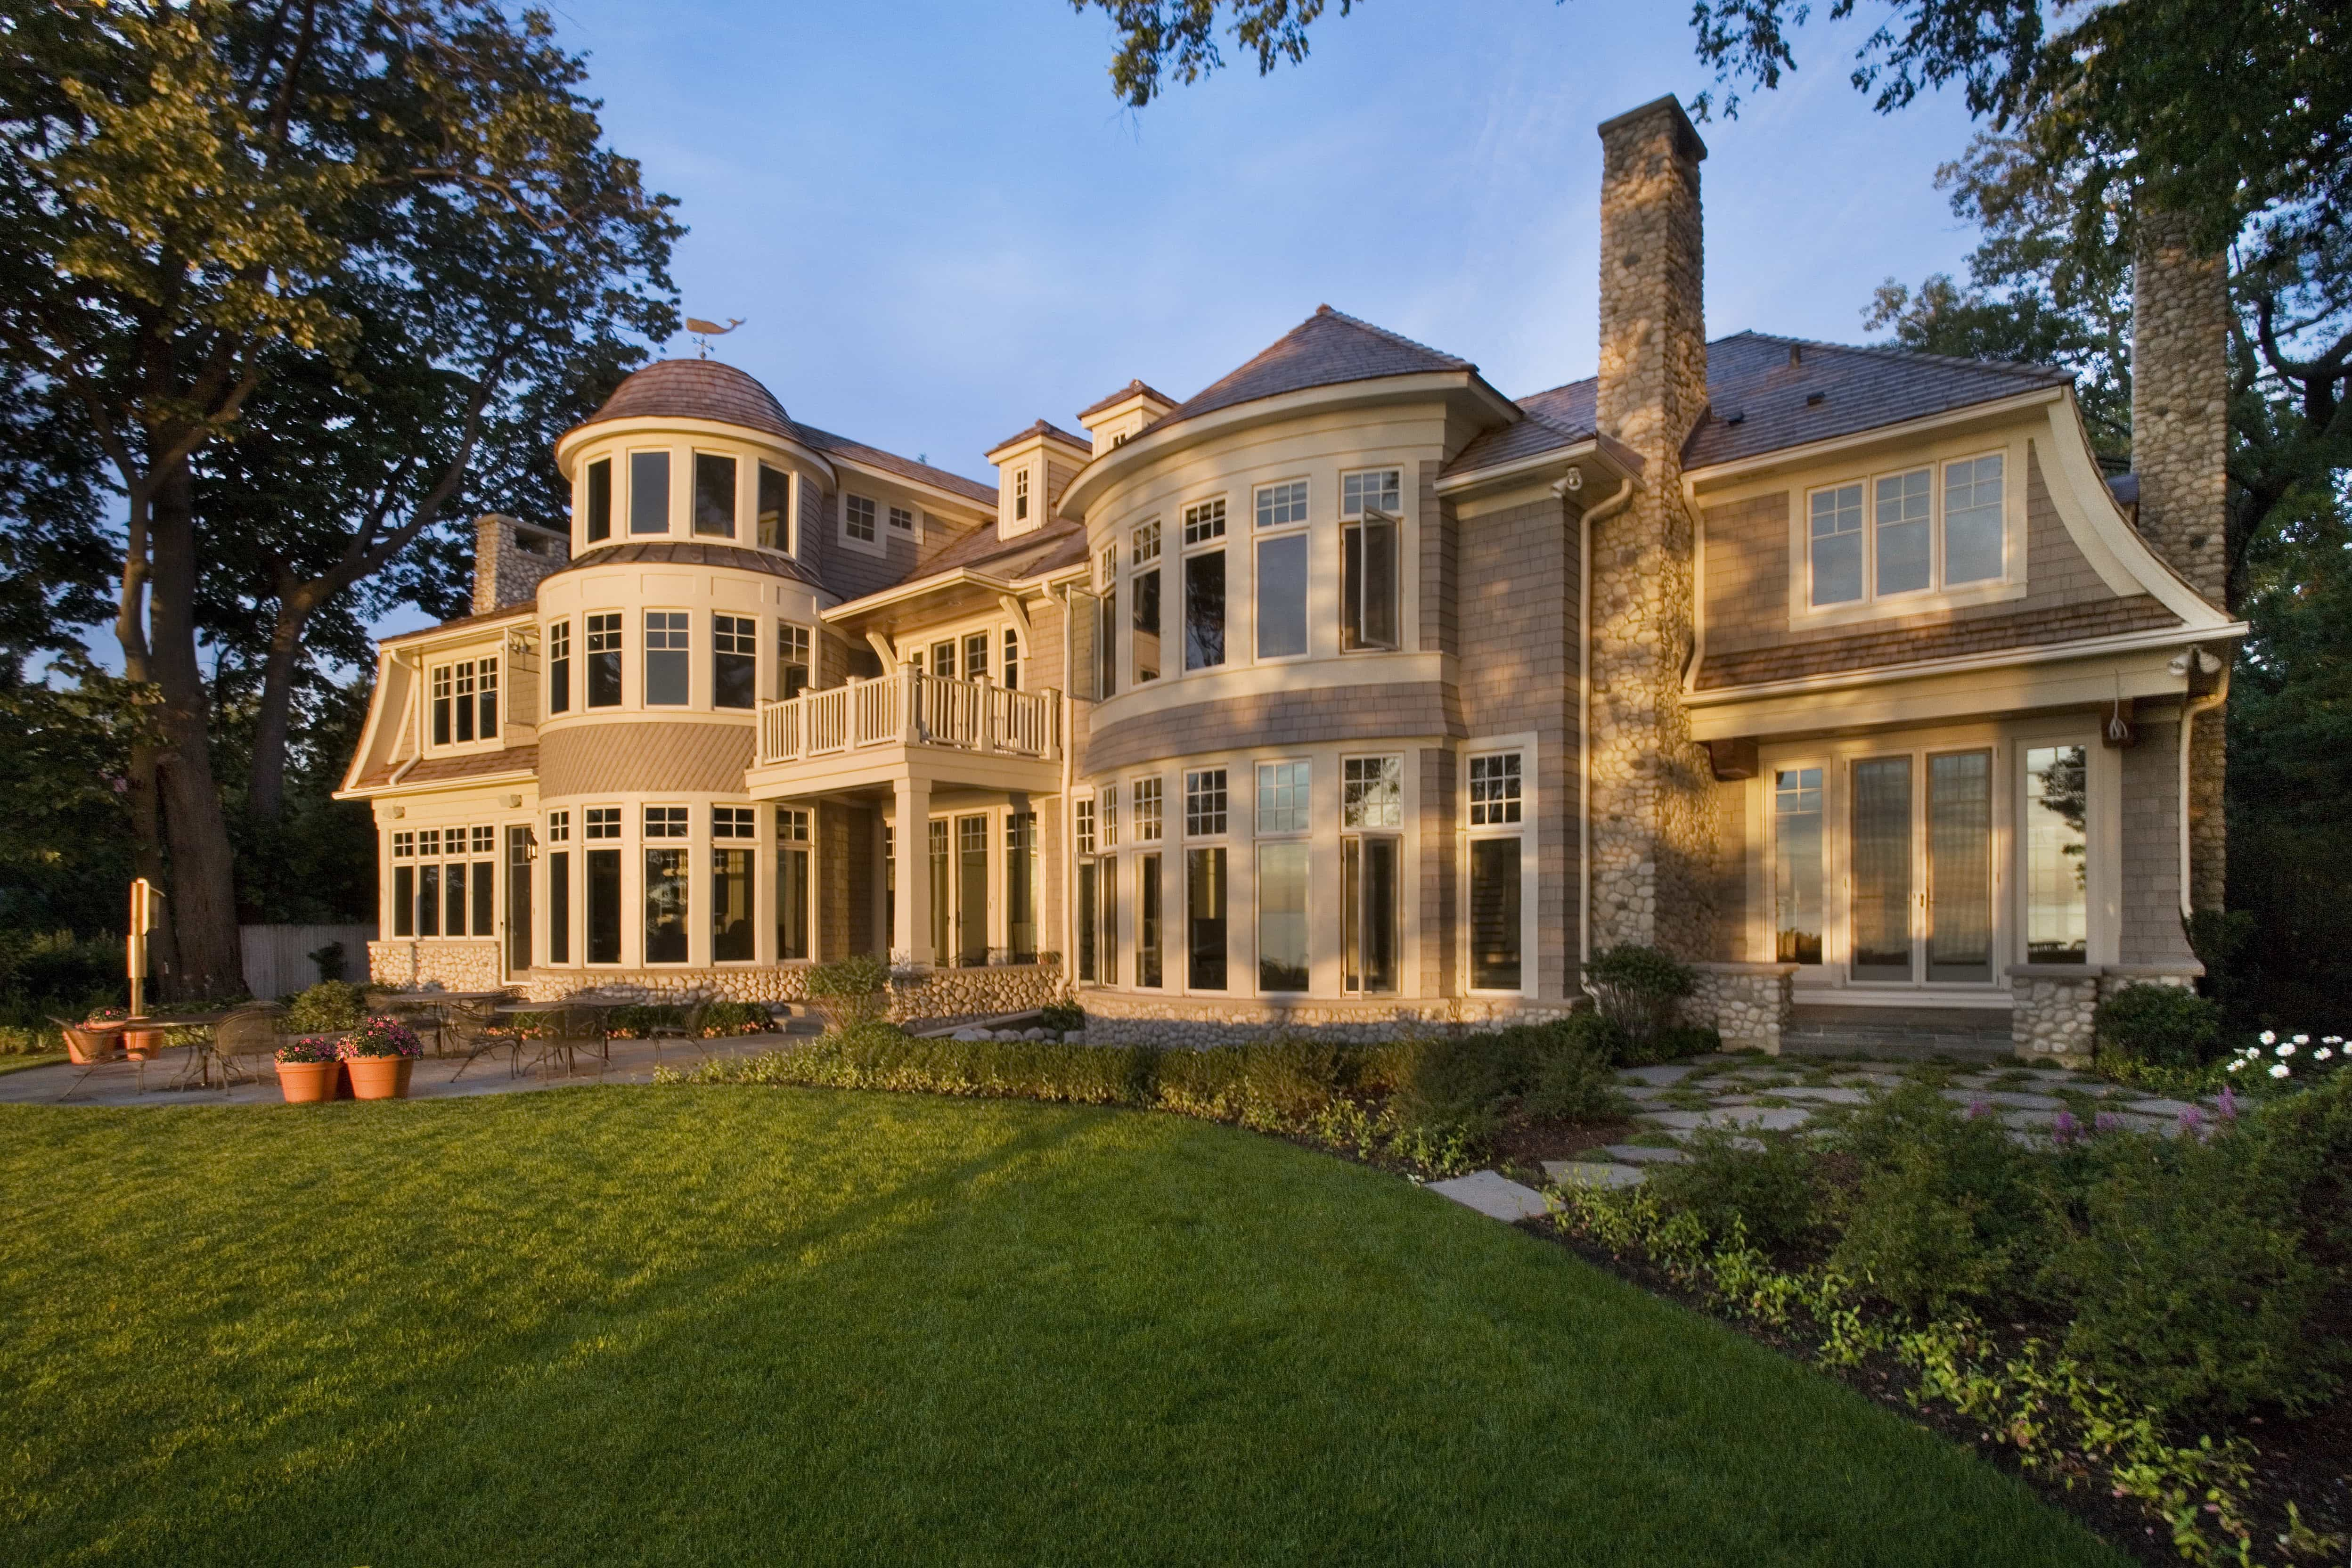 Elegant cape house designs house floor ideas for Mansions in cape cod